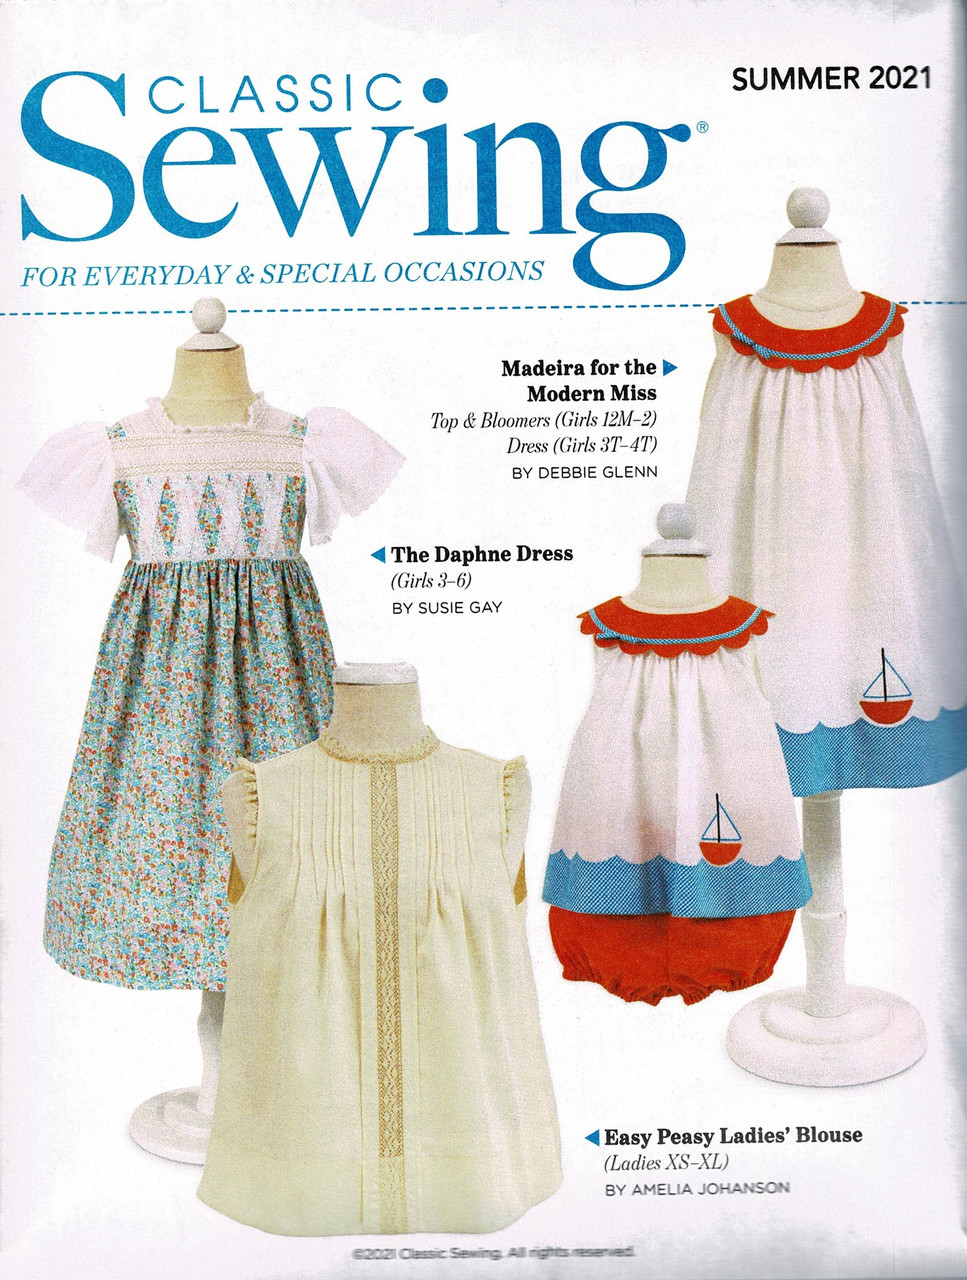 Sewing pattern that comes with the Summer 2021 Classic Sewing magazine